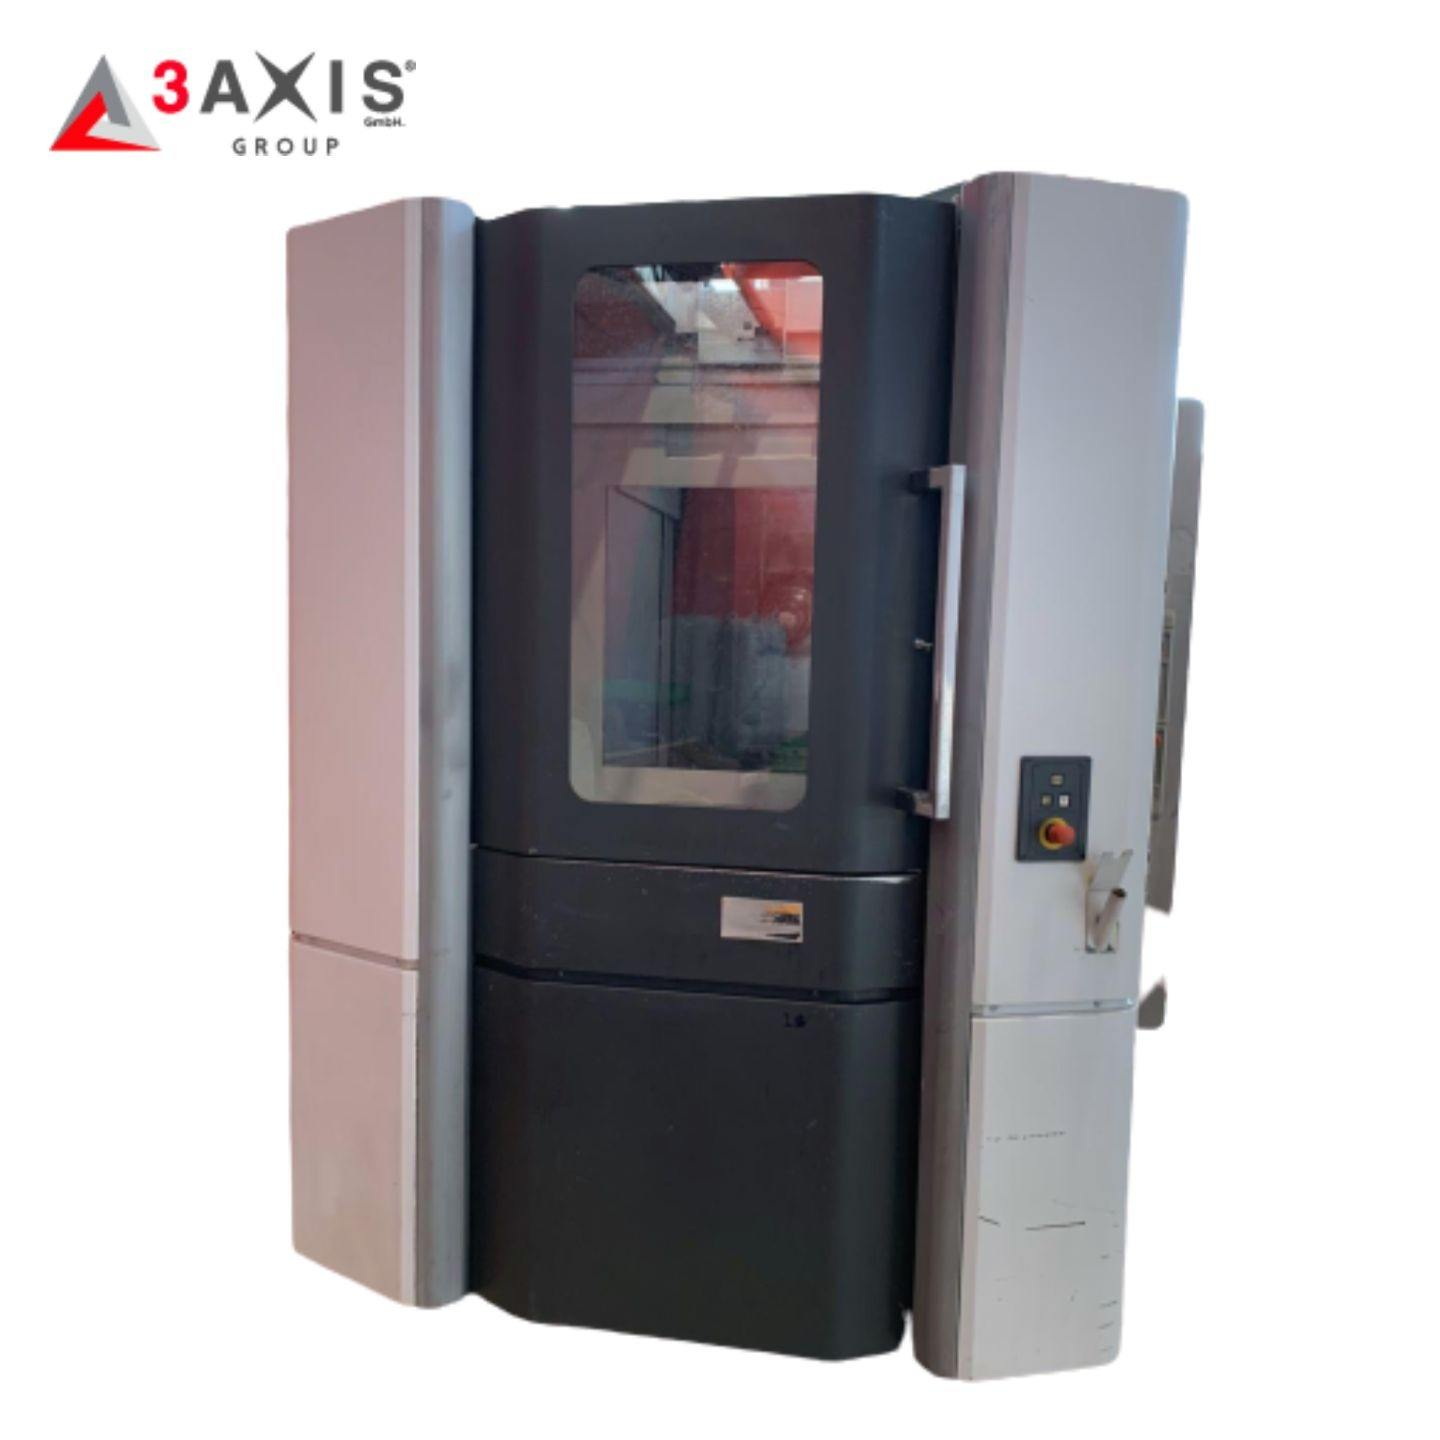 3AXIS GROUP USED HORIZONTAL CNC LATHE MACHINE MORI SEIKI CNC MACHINING CENTER MODEL FOR METAL MACHINING